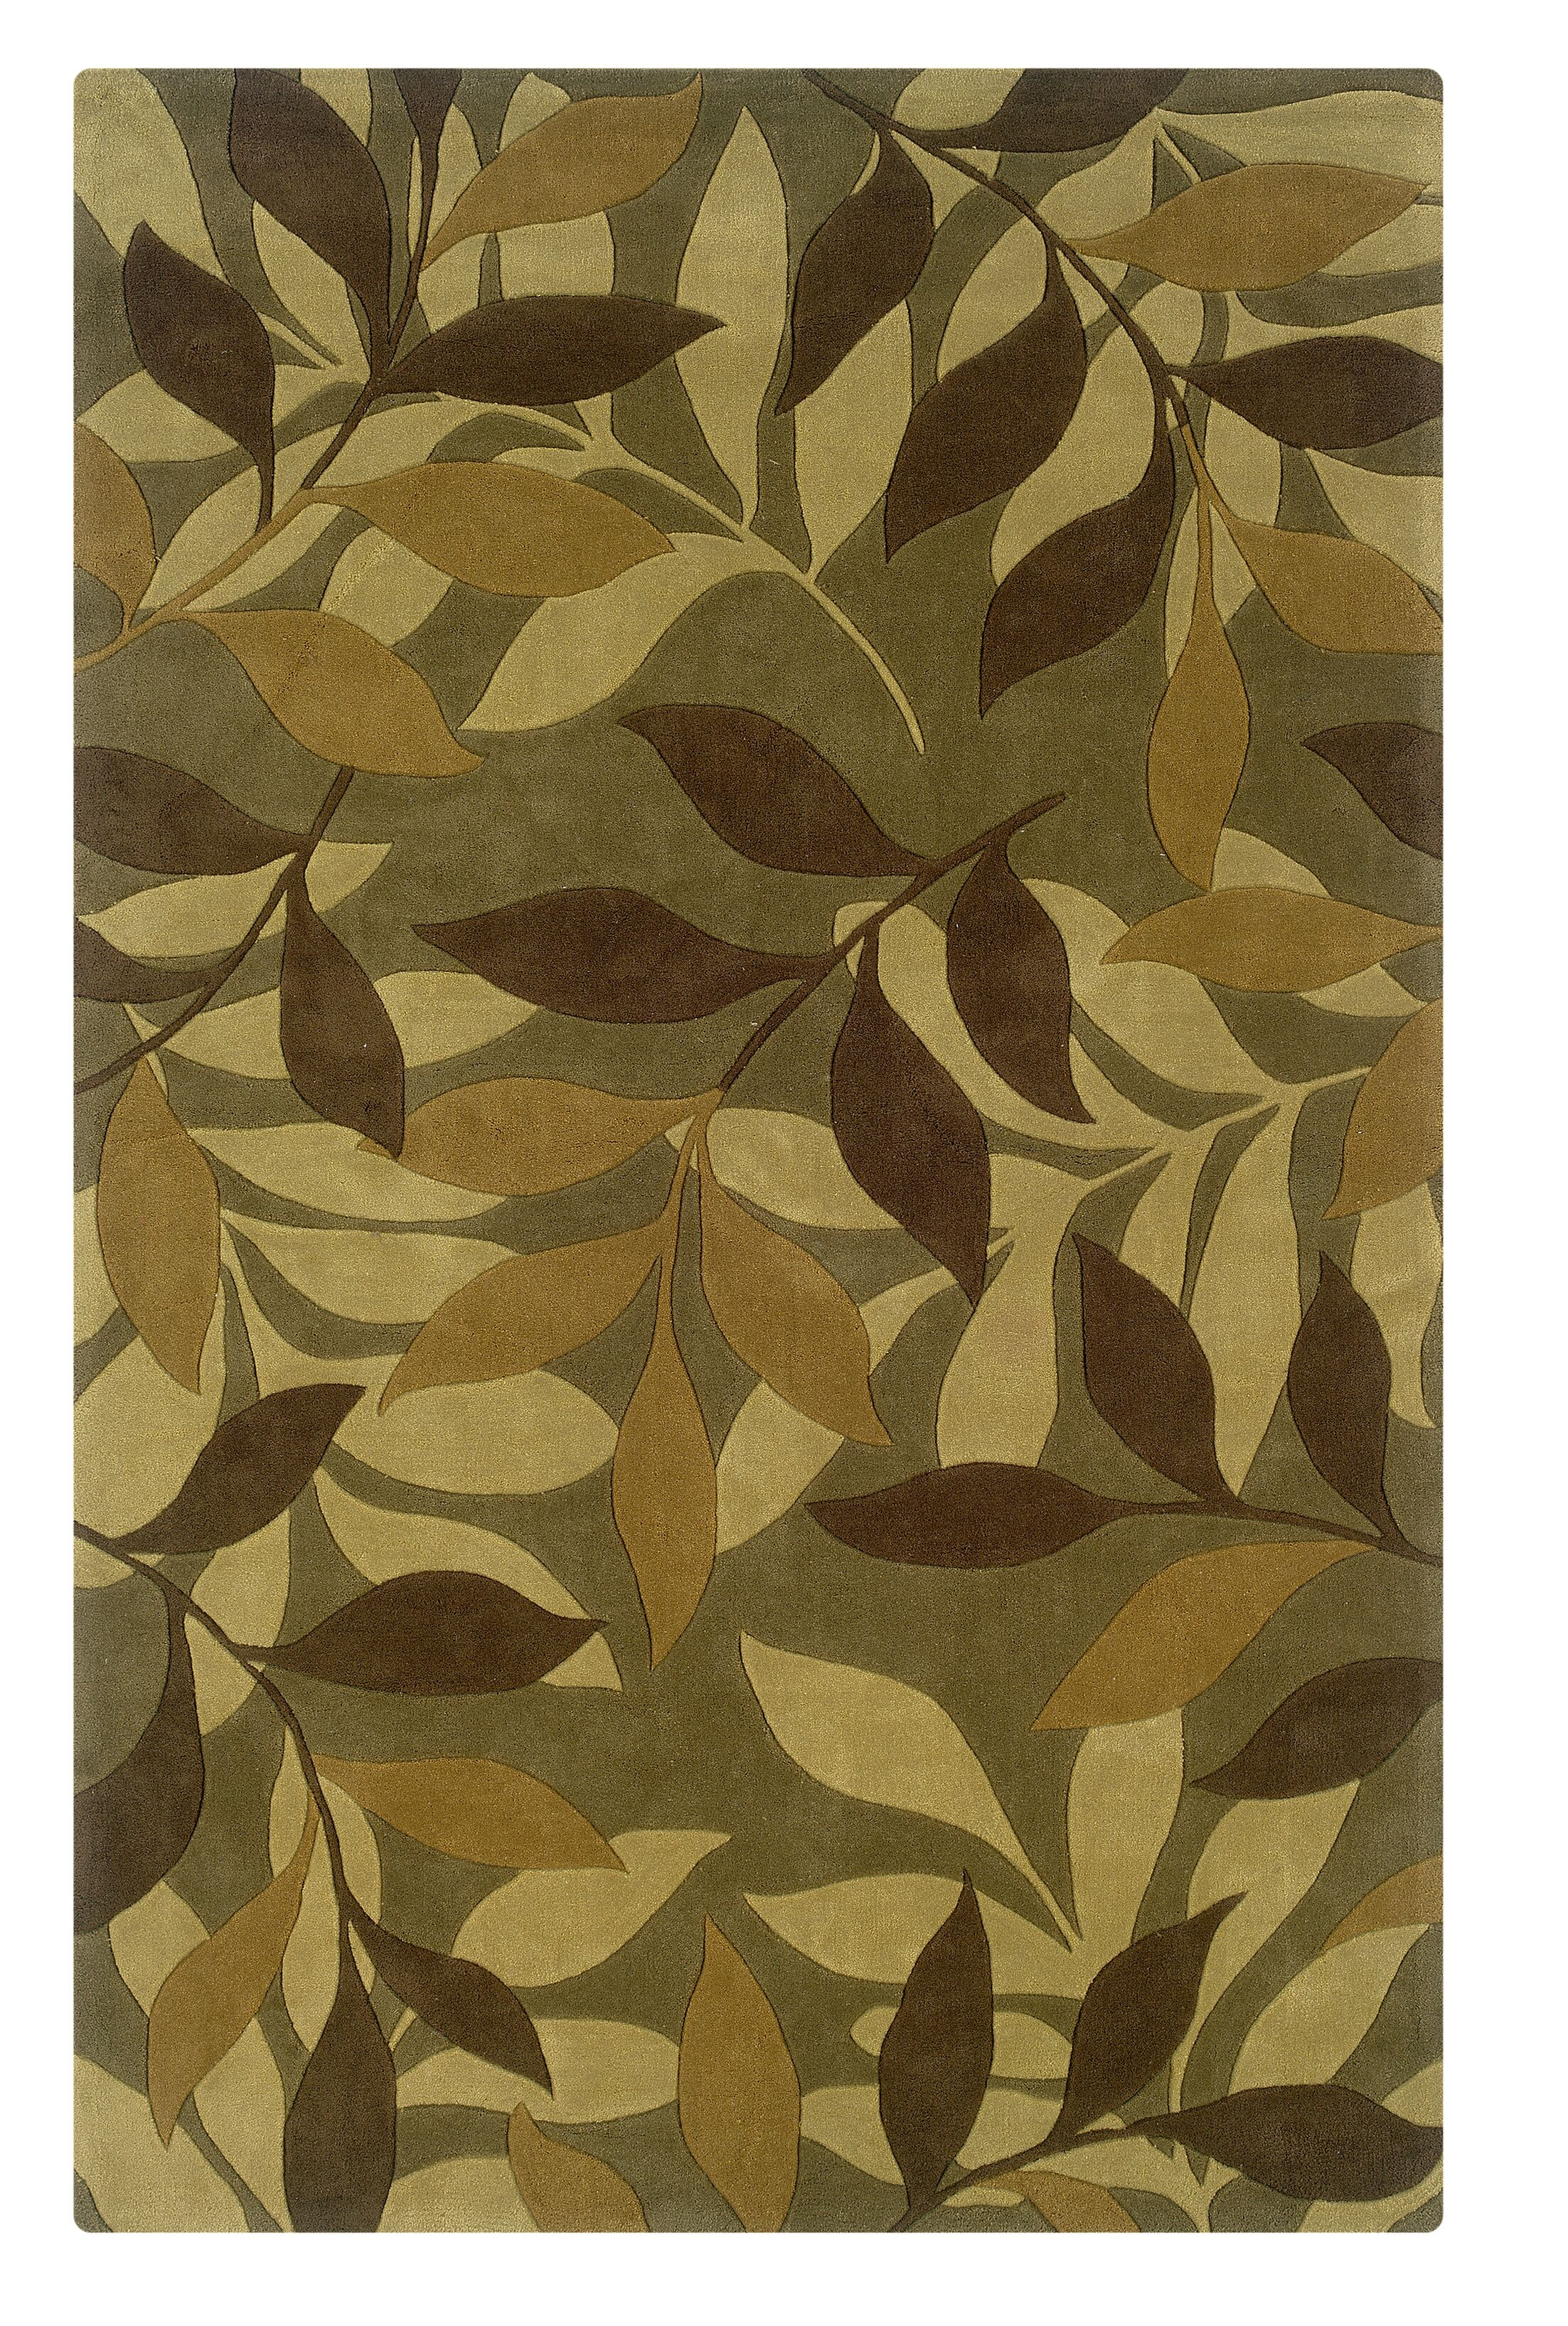 Safford Hand-Tufted Green/Brown Area Rug Rug Size: Rectangle 5' x 7'